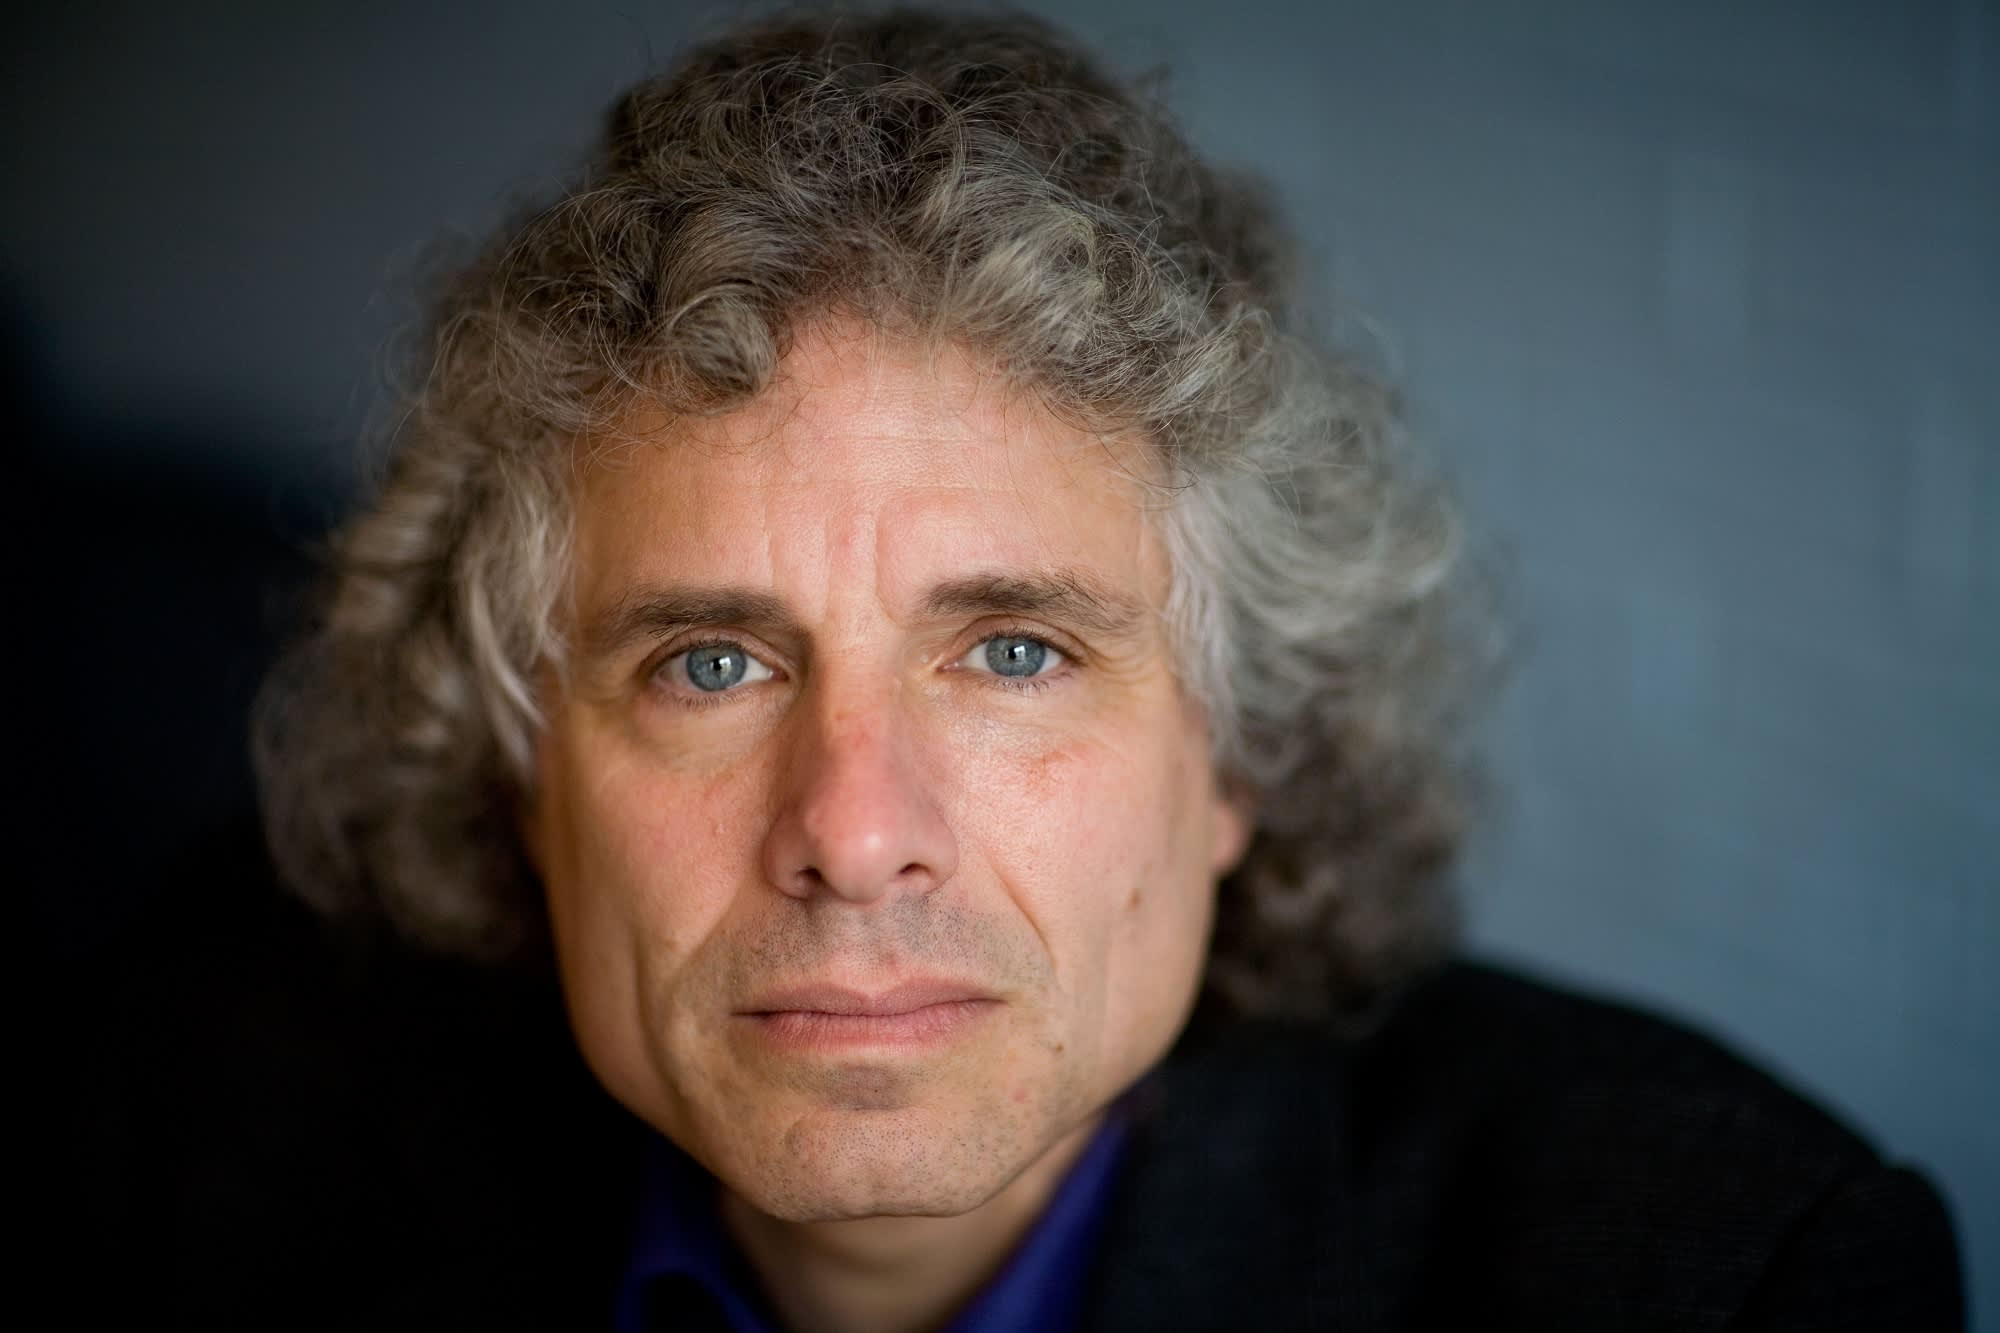 Harvard psychologist Steven Pinker: The No. 1 communication mistake that even smart people make